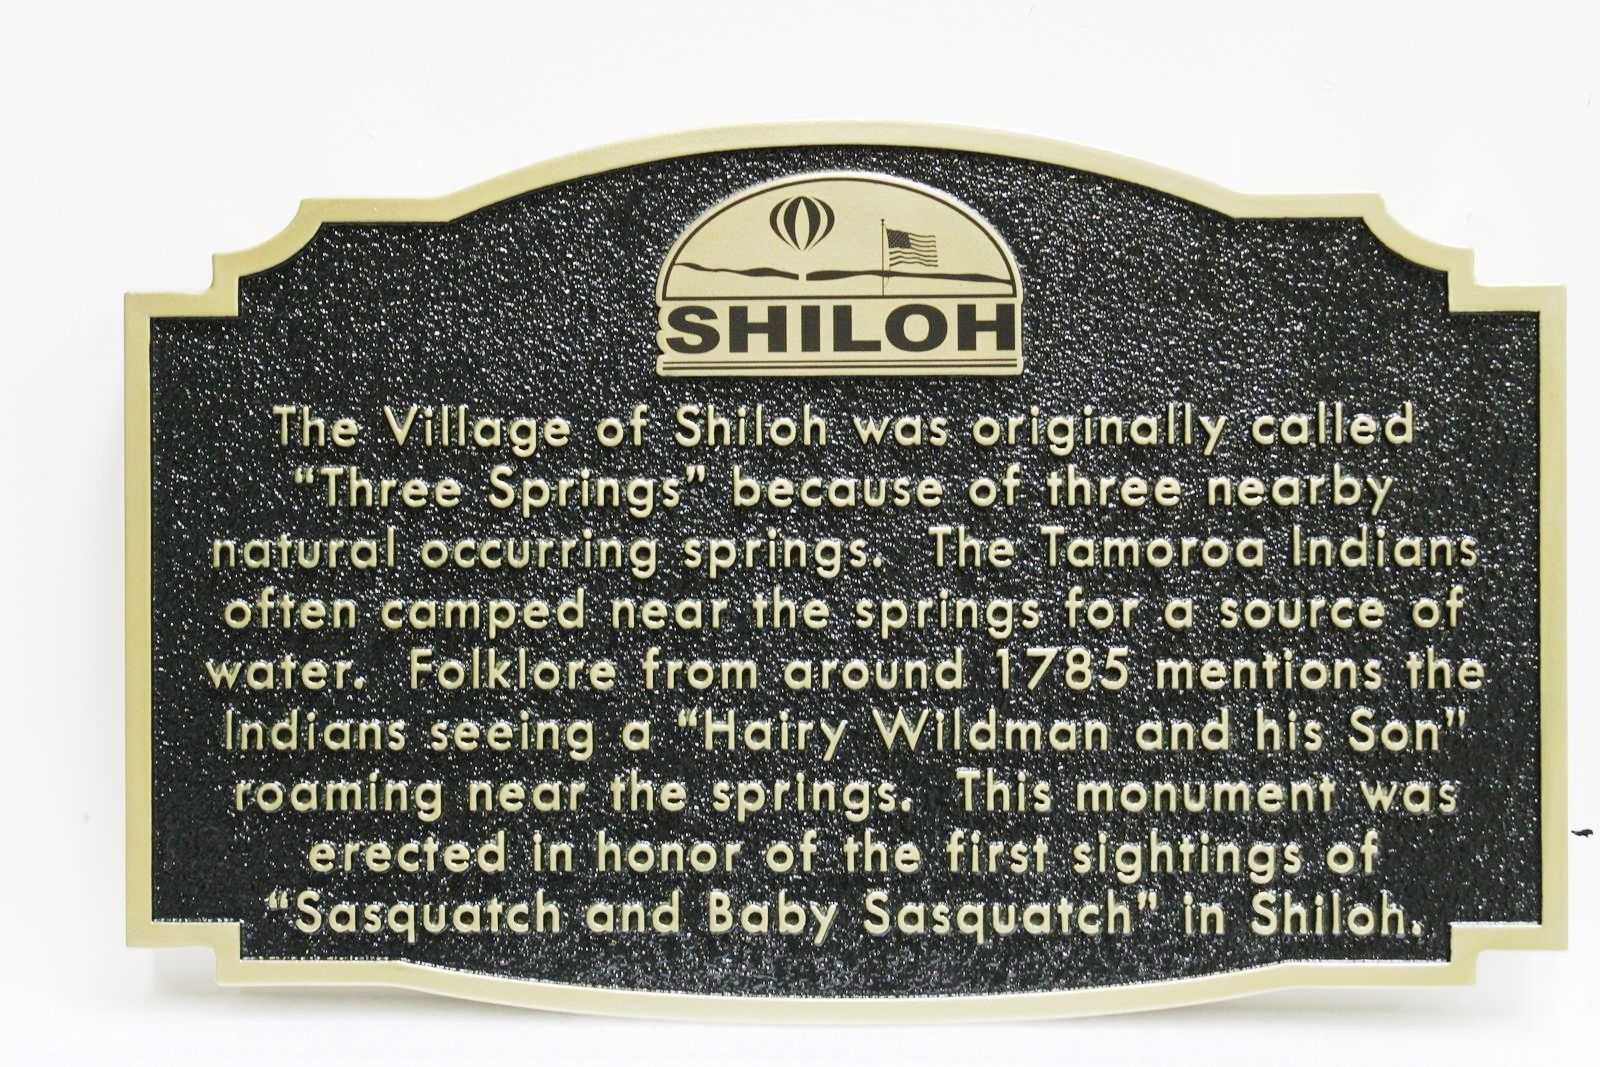 F15902 - Carved and Sandblasted HDU  Historical Marker Sign  for the Village of Shiloh